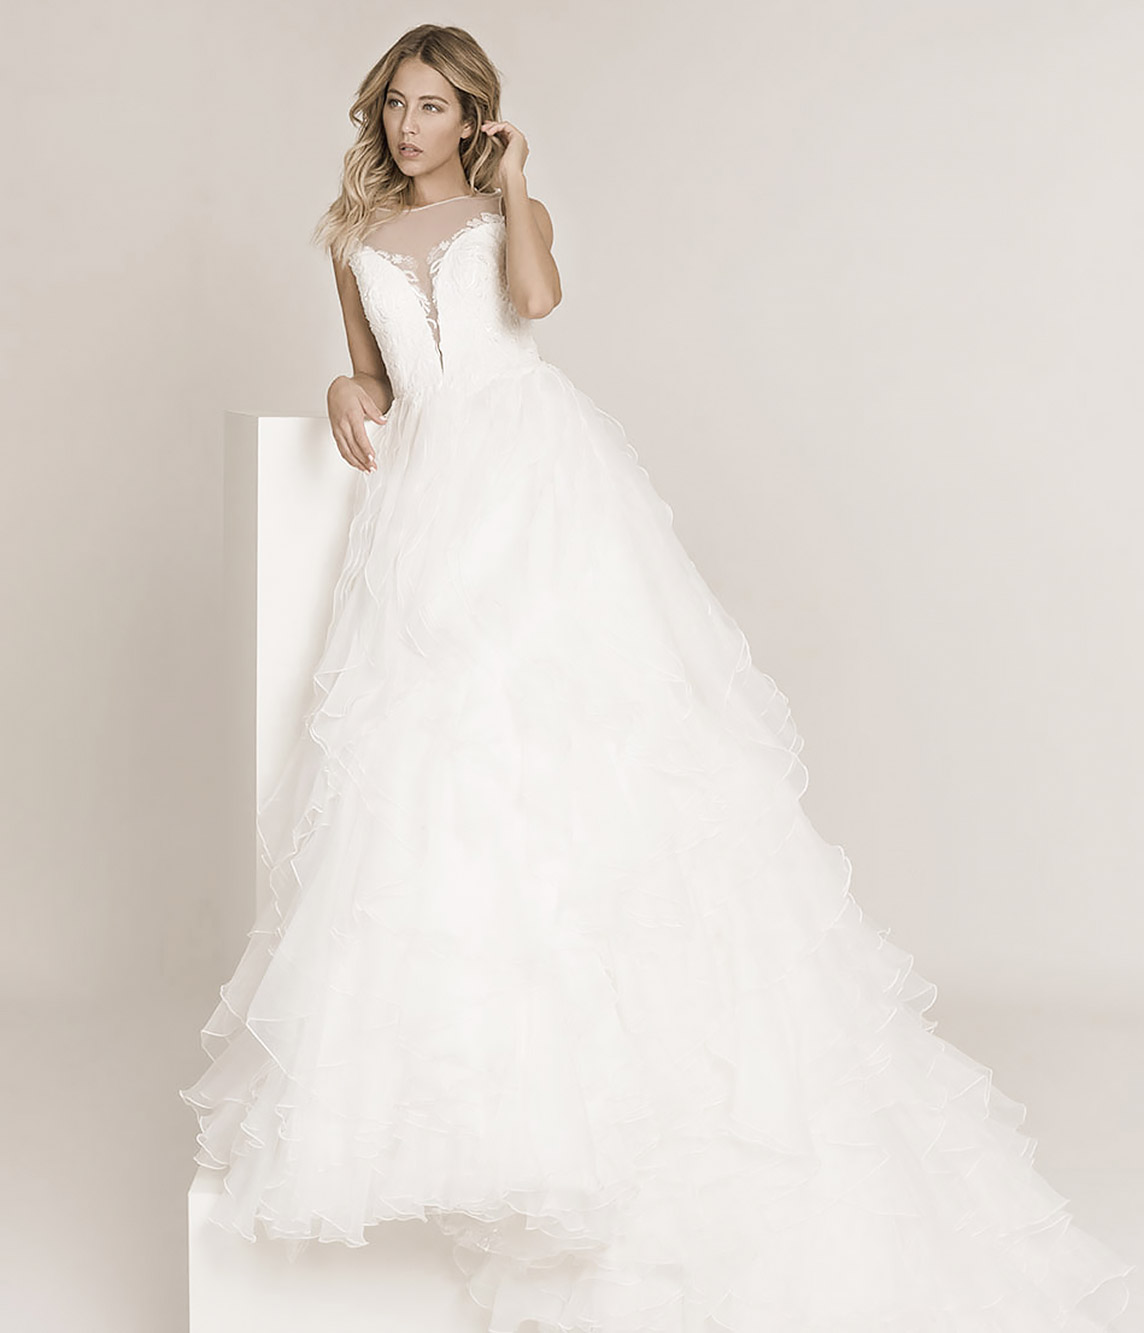 Your own bridal fashion store opening with bridal gowns for merchants